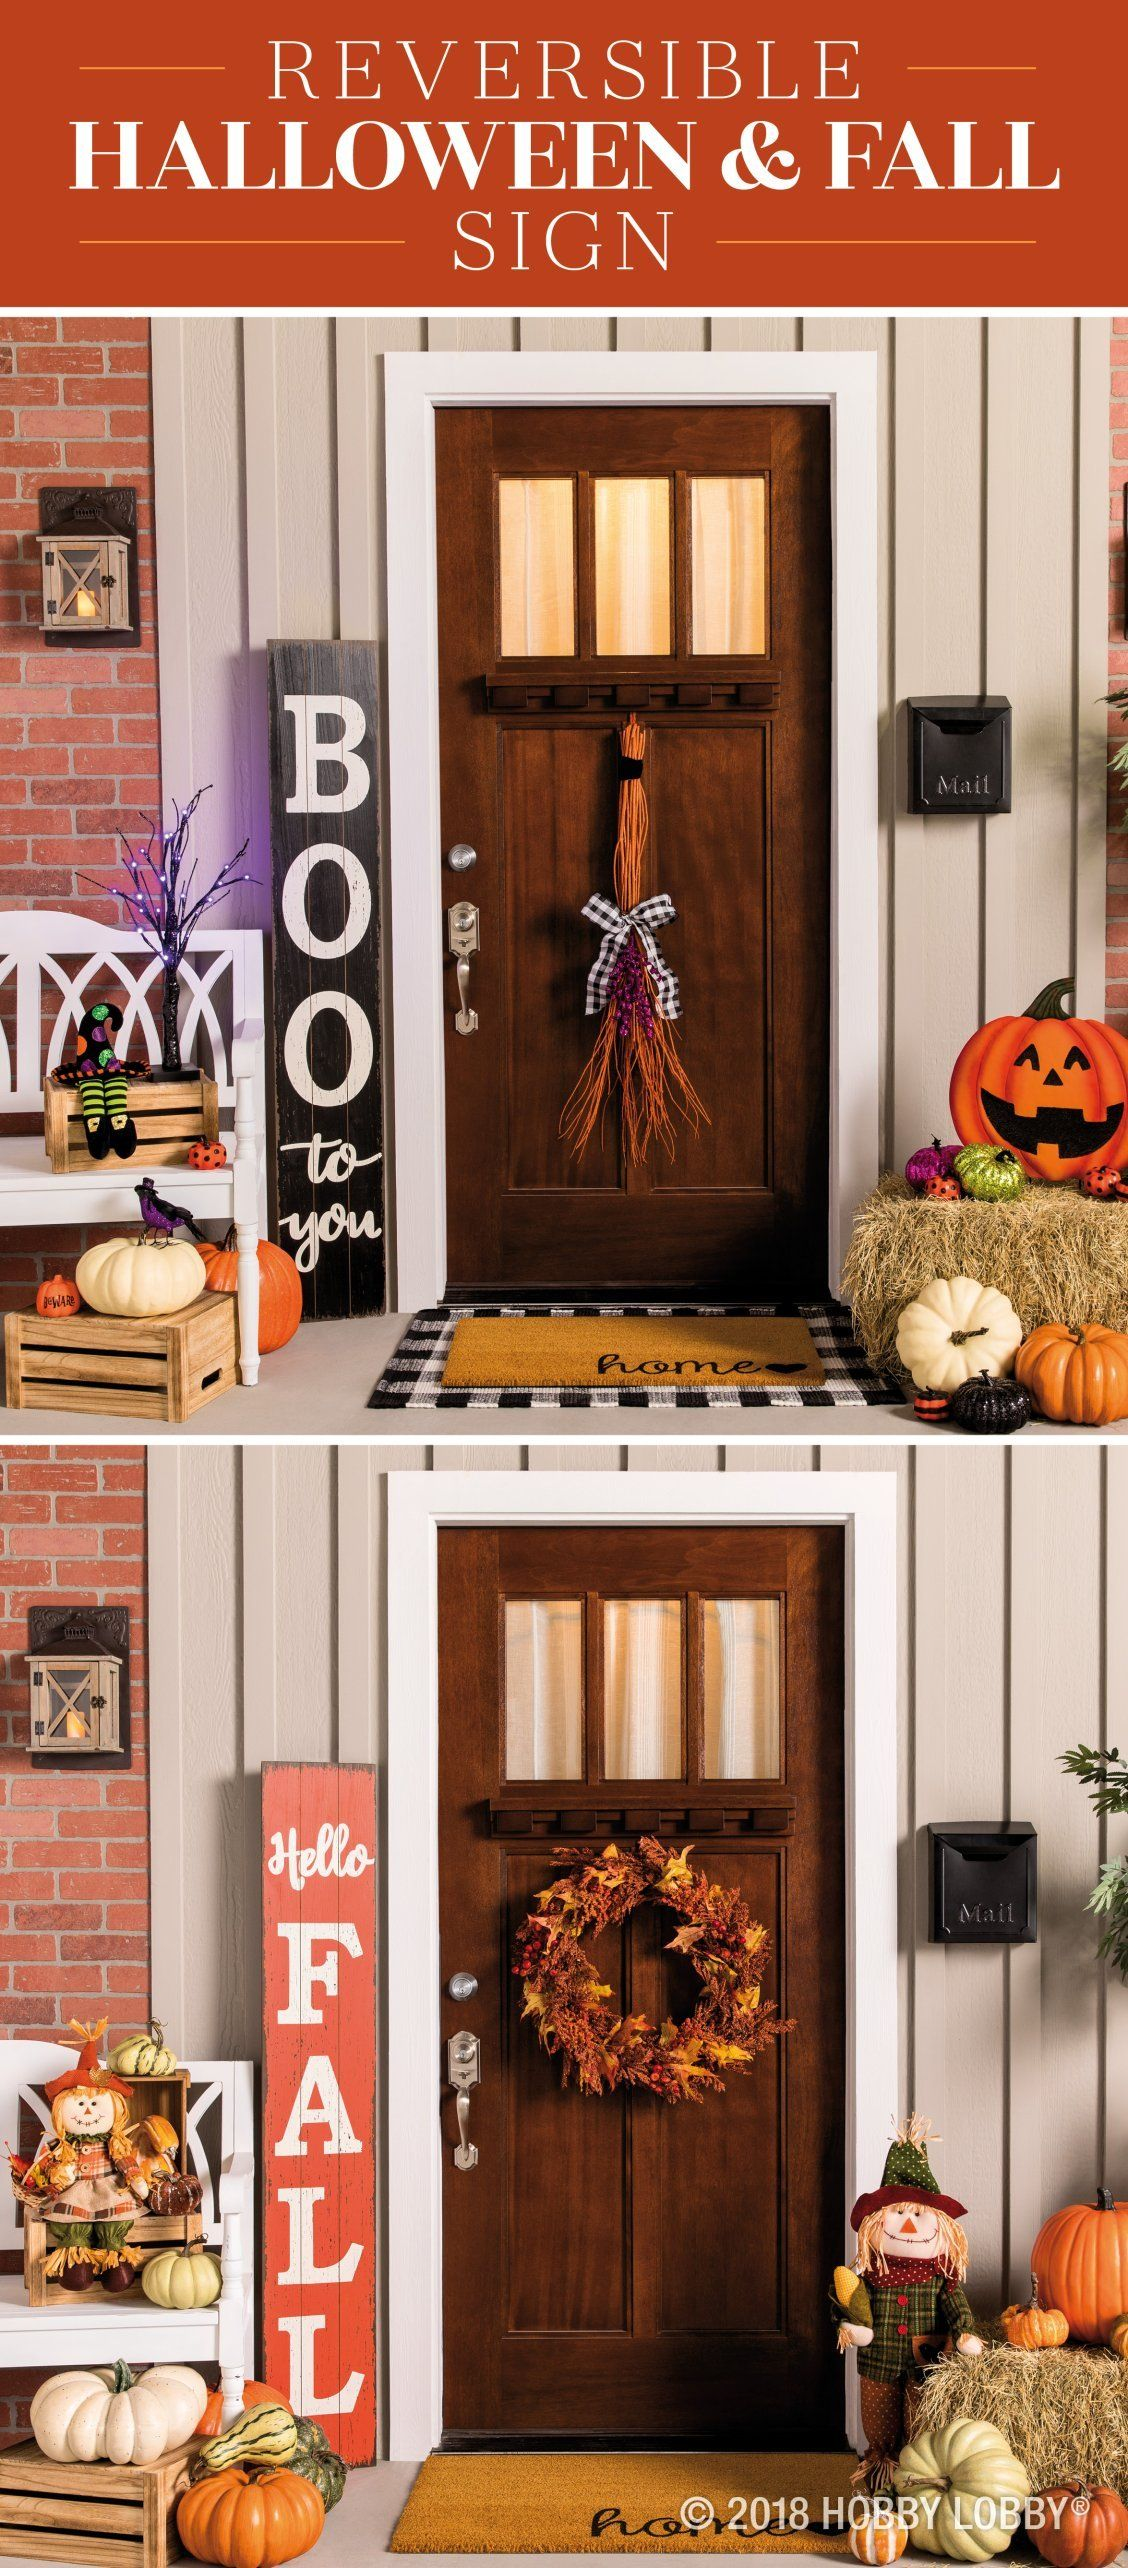 switch up your porch decor for fall and halloween with cute pumpkins